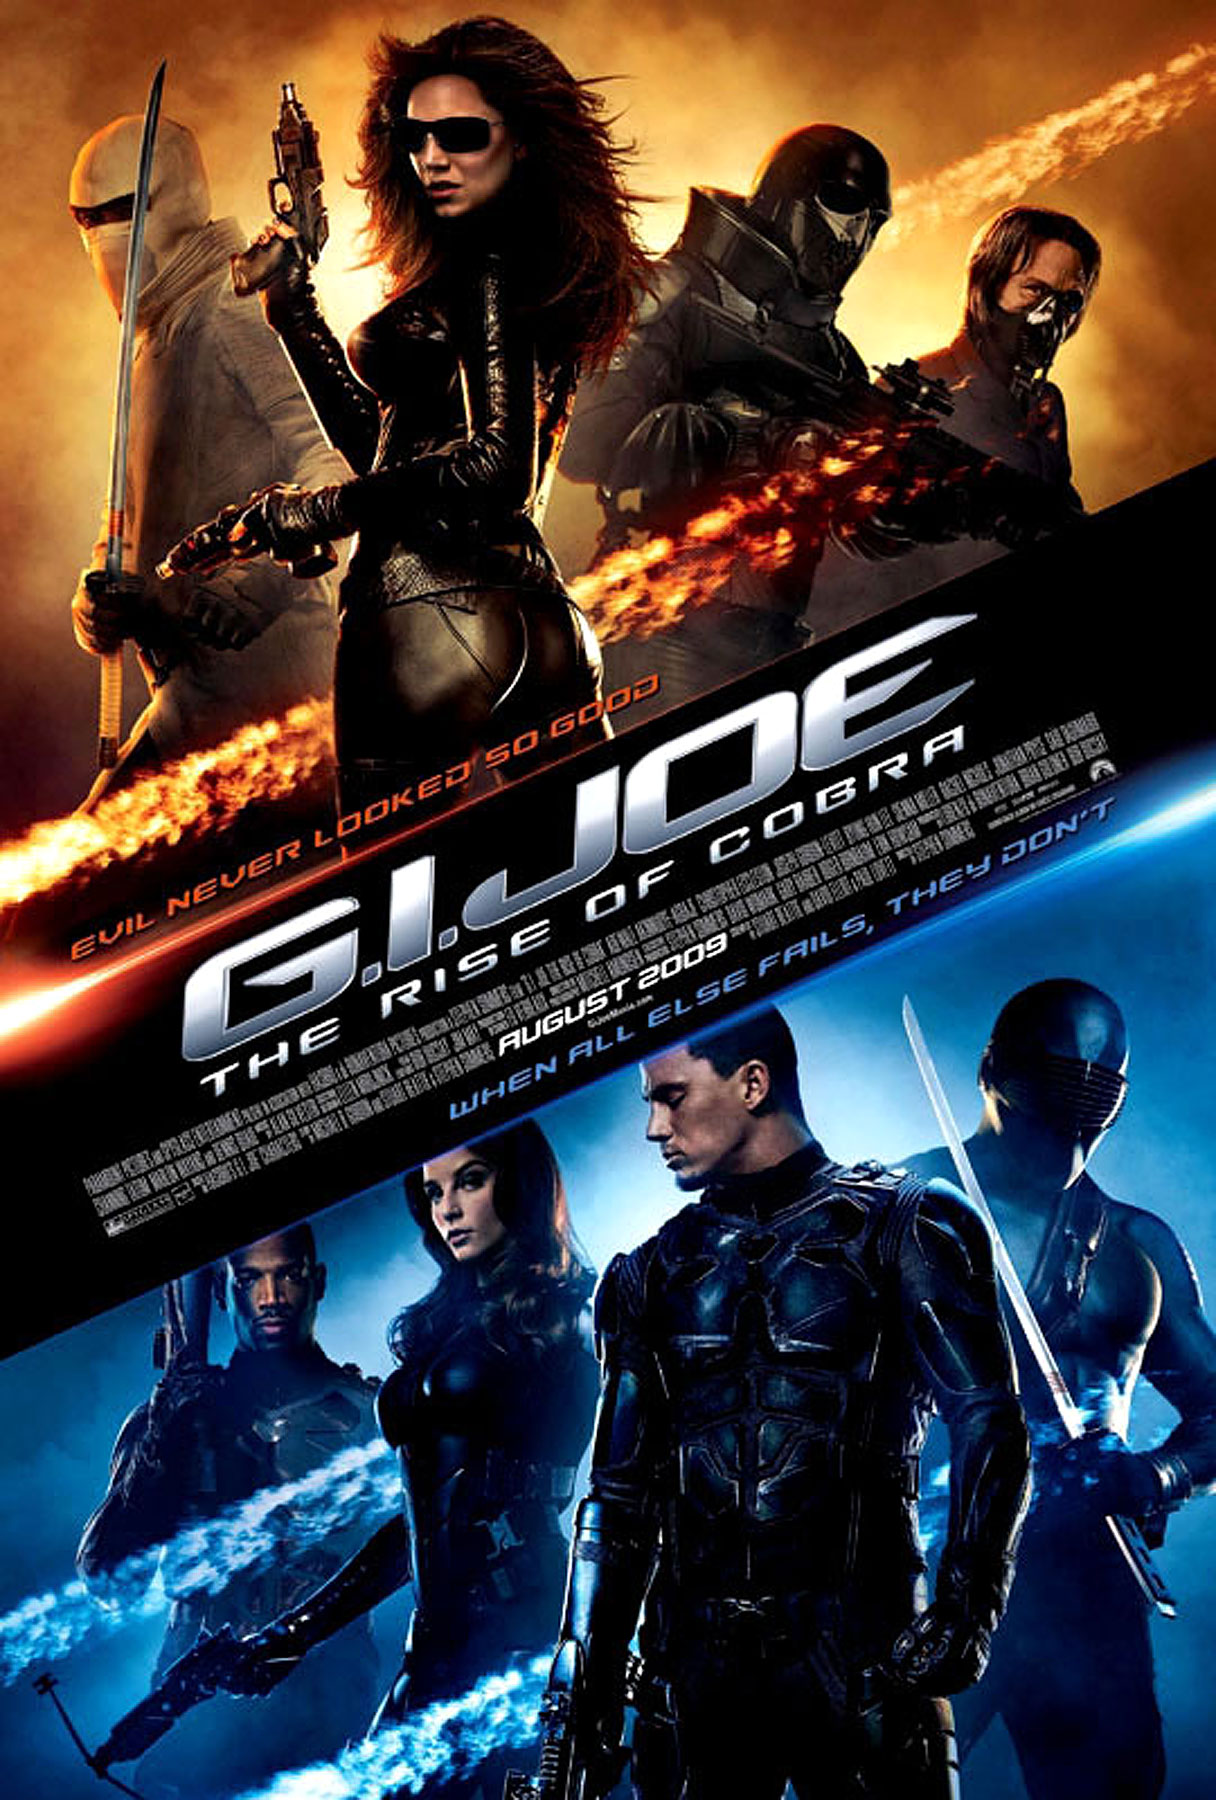 G.I. Joe: The Rise of Cobra—New Poster and Trailer